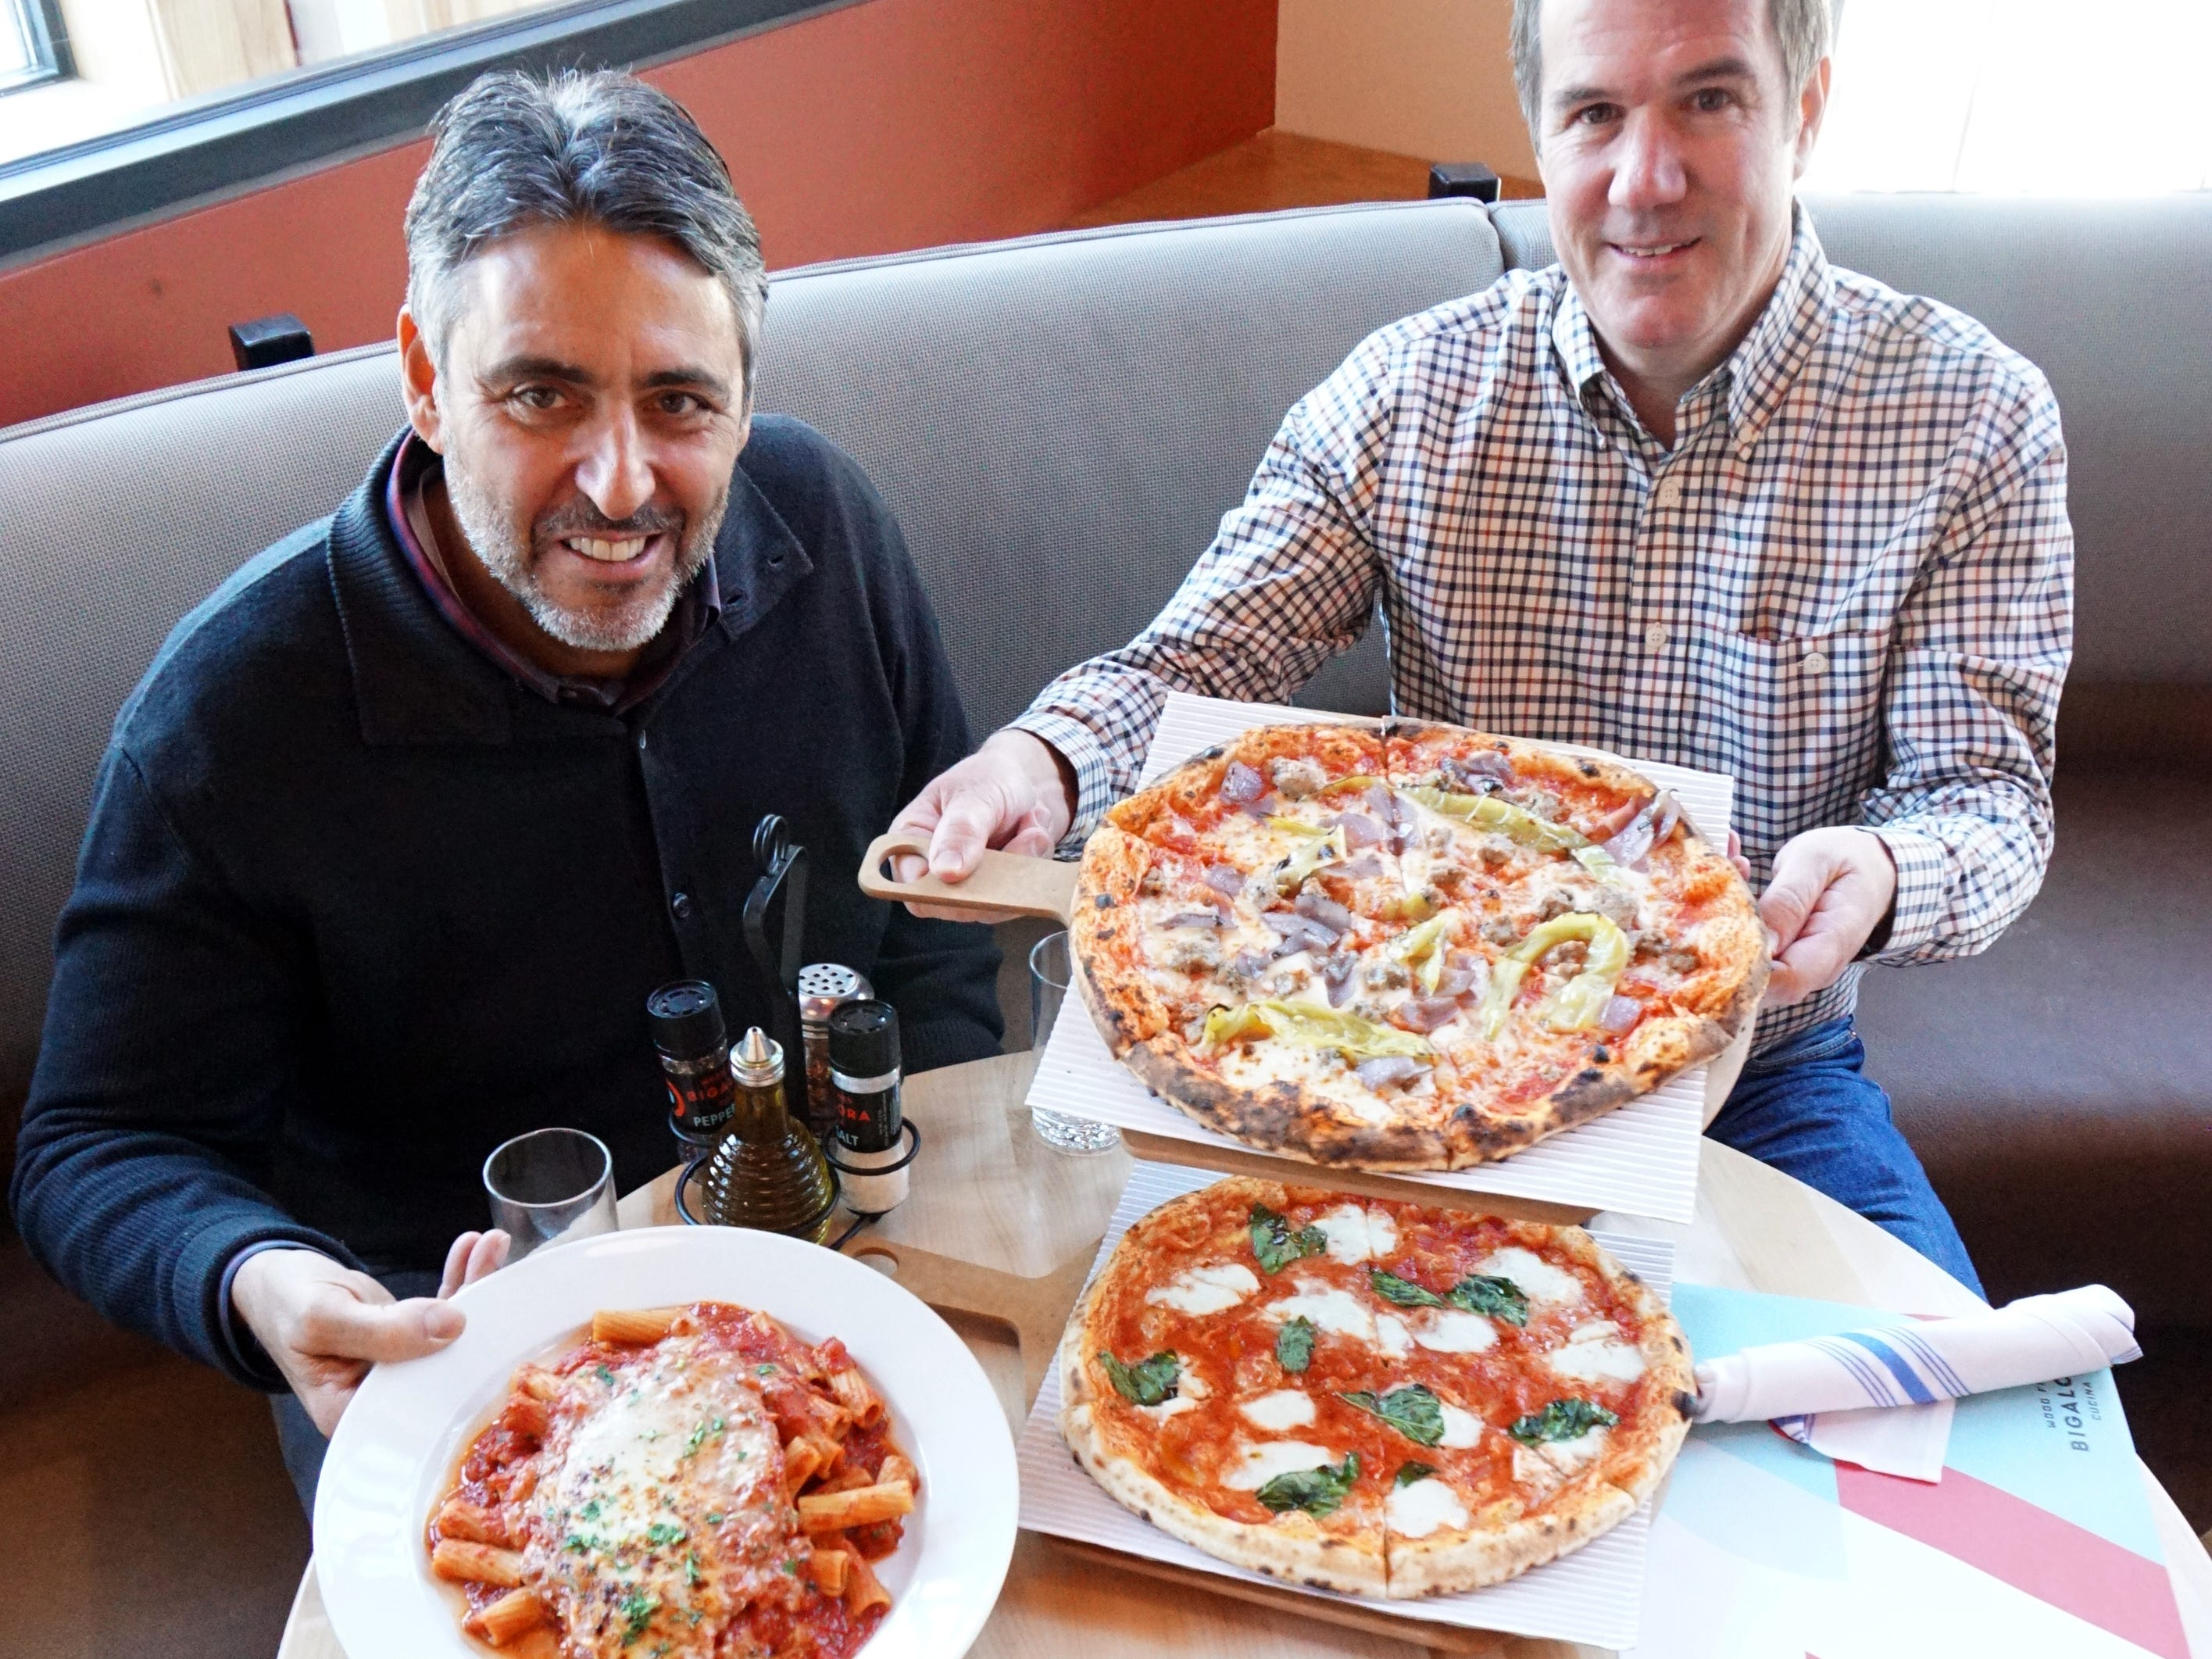 Bigalora co-owners Luciano DelSignore, left, and Mike Collins display some of their downtown Plymouth restaurant's fare including chicken parmesan, a mozzarella and basil and sausage and red onion pizza, and a chopped brussel sprout salad.